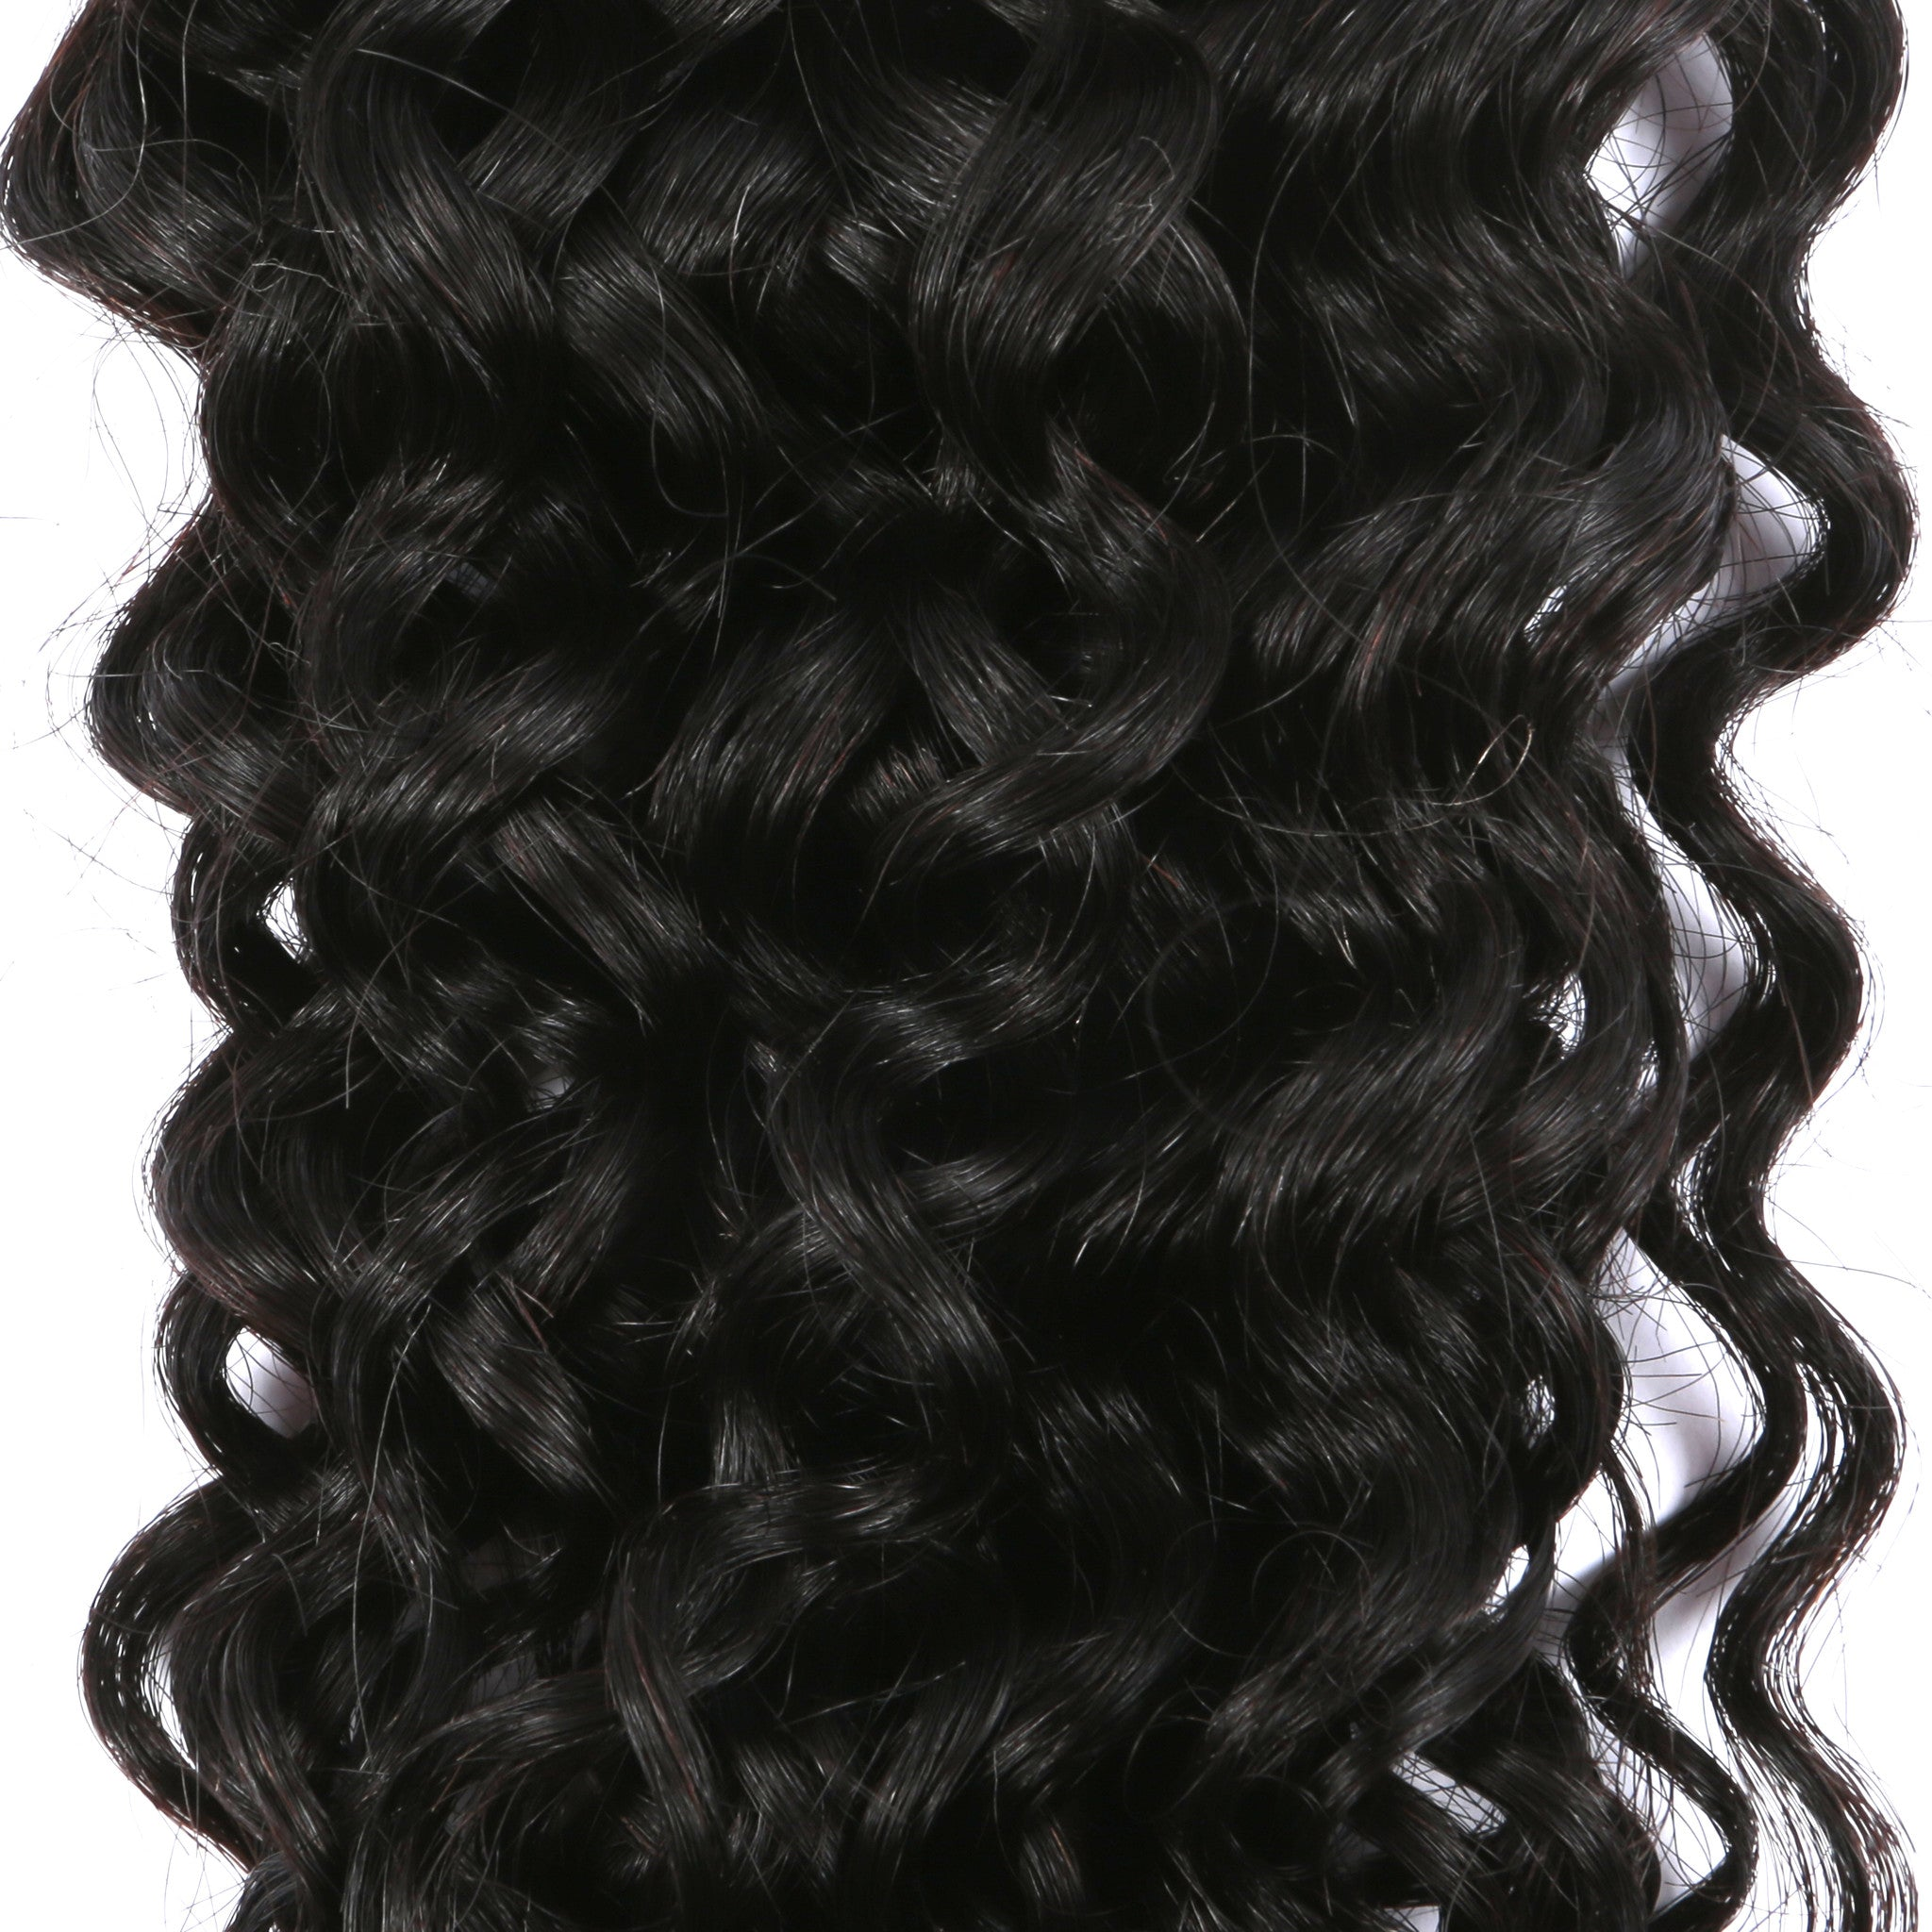 Premium Virgin Remy Curly Hair Extensions